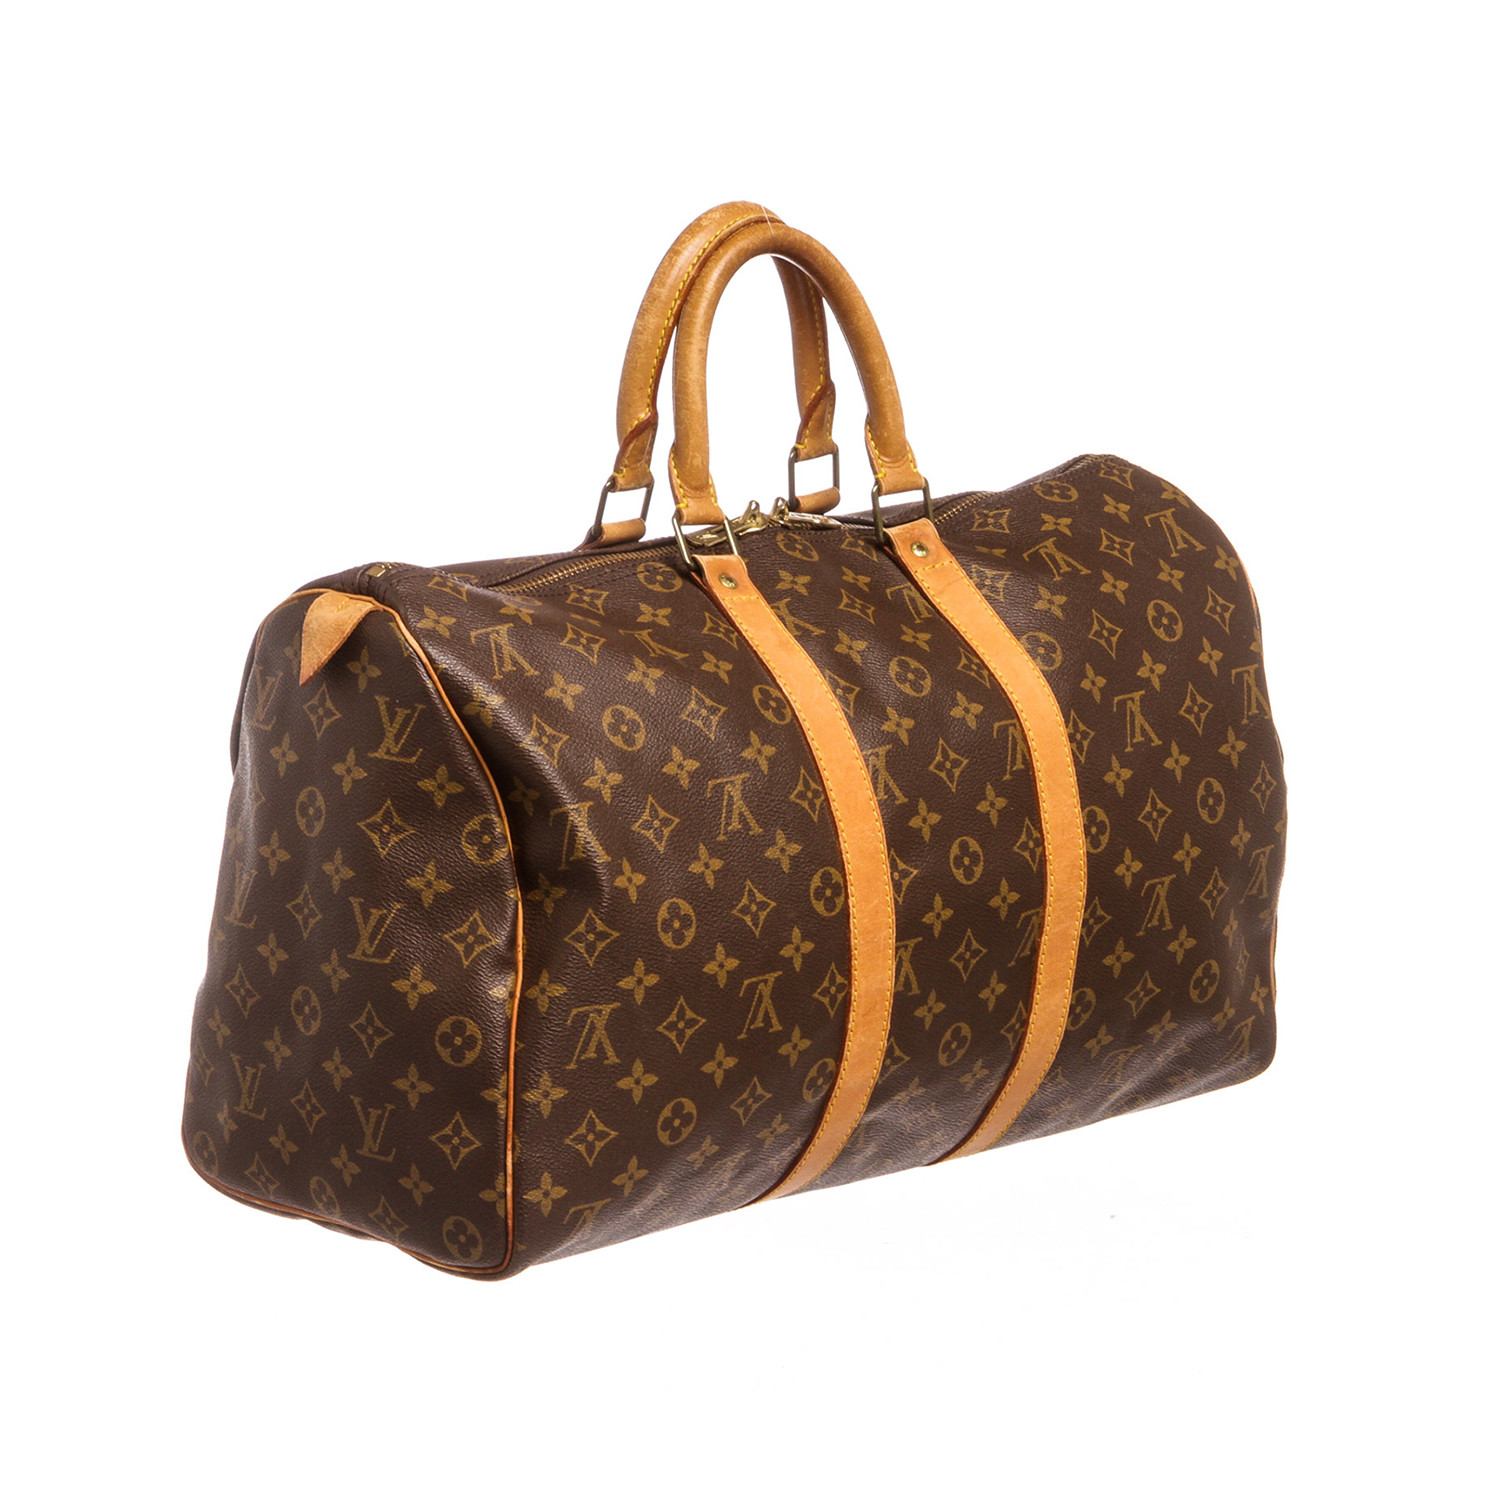 louis vuitton monogram keepall 45 duffle bag luggage pre owned louis vuitton touch of. Black Bedroom Furniture Sets. Home Design Ideas